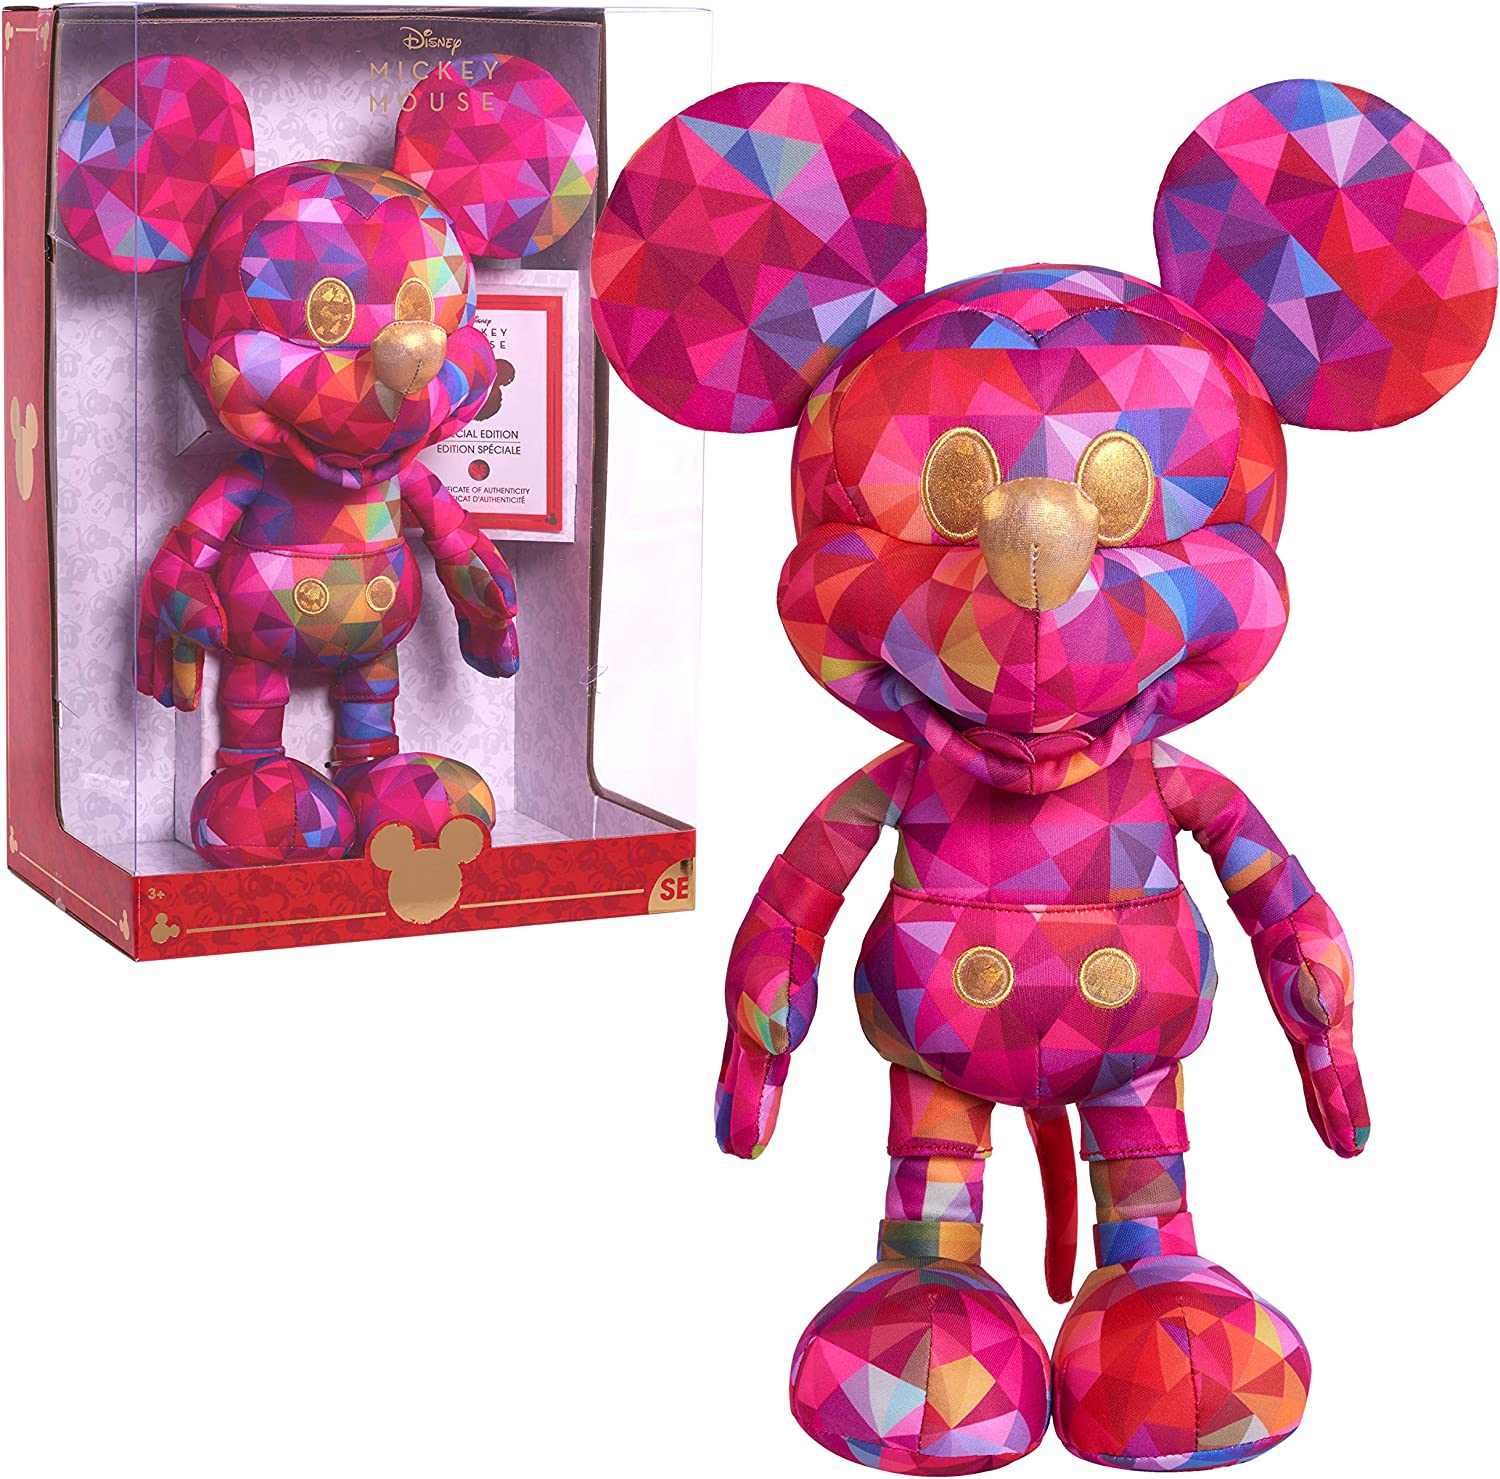 Limited Edition Disney Kaleidoscope of Color Mickey Mouse Plush, Amazon Exclusive